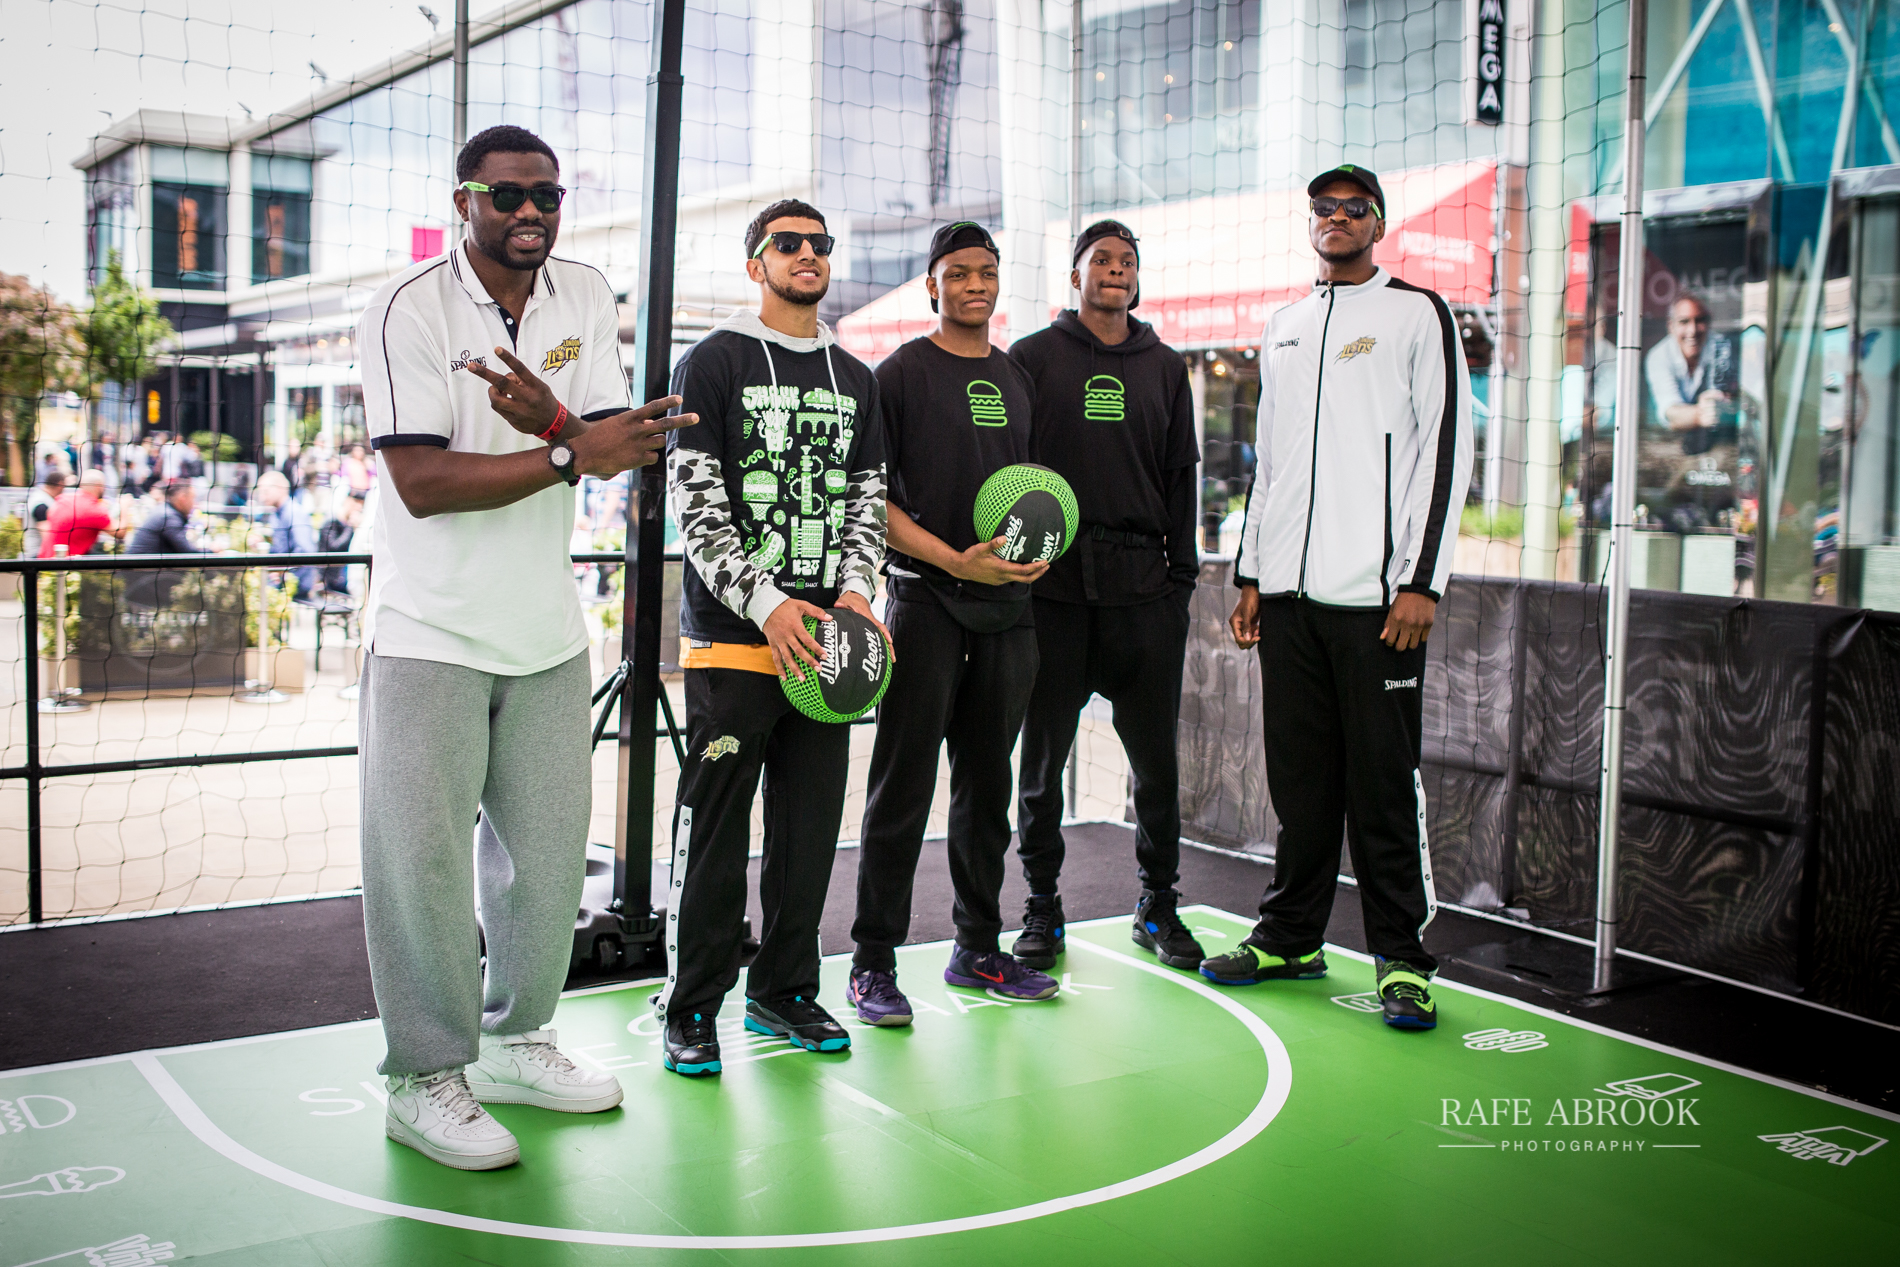 shake shack uk westfield stratford london experiential basketball-1158.jpg